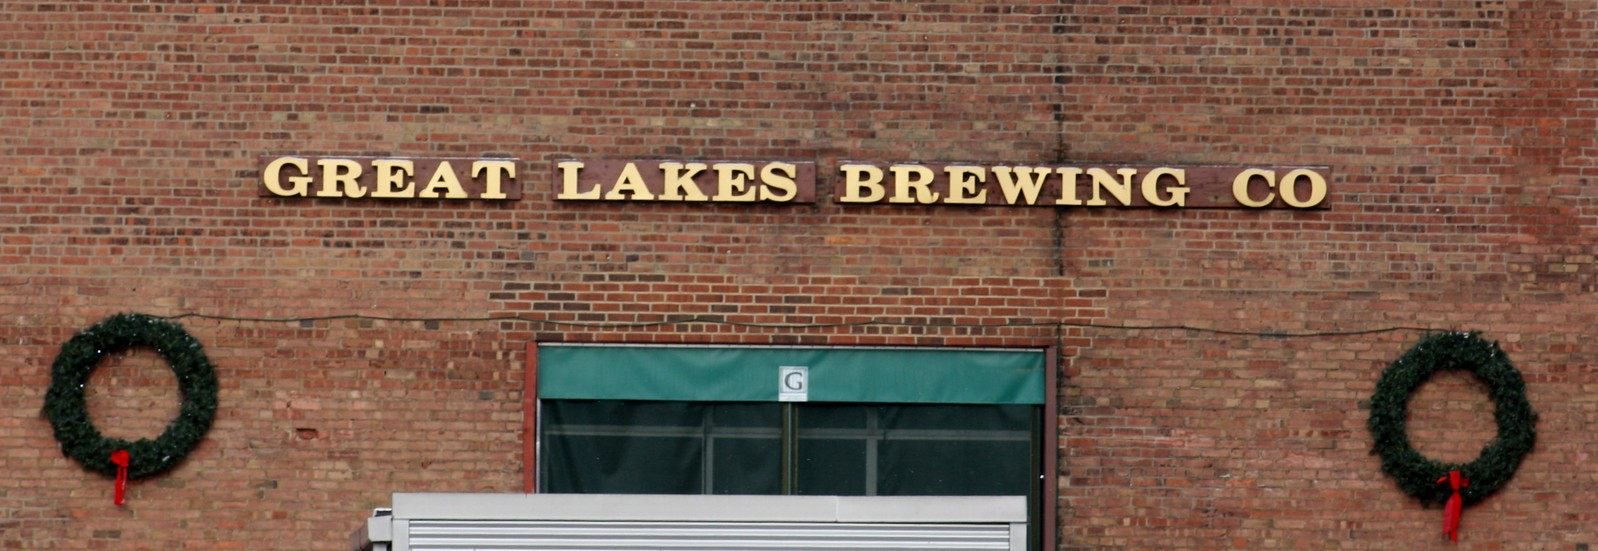 Great Lakes Brewing Co Sign